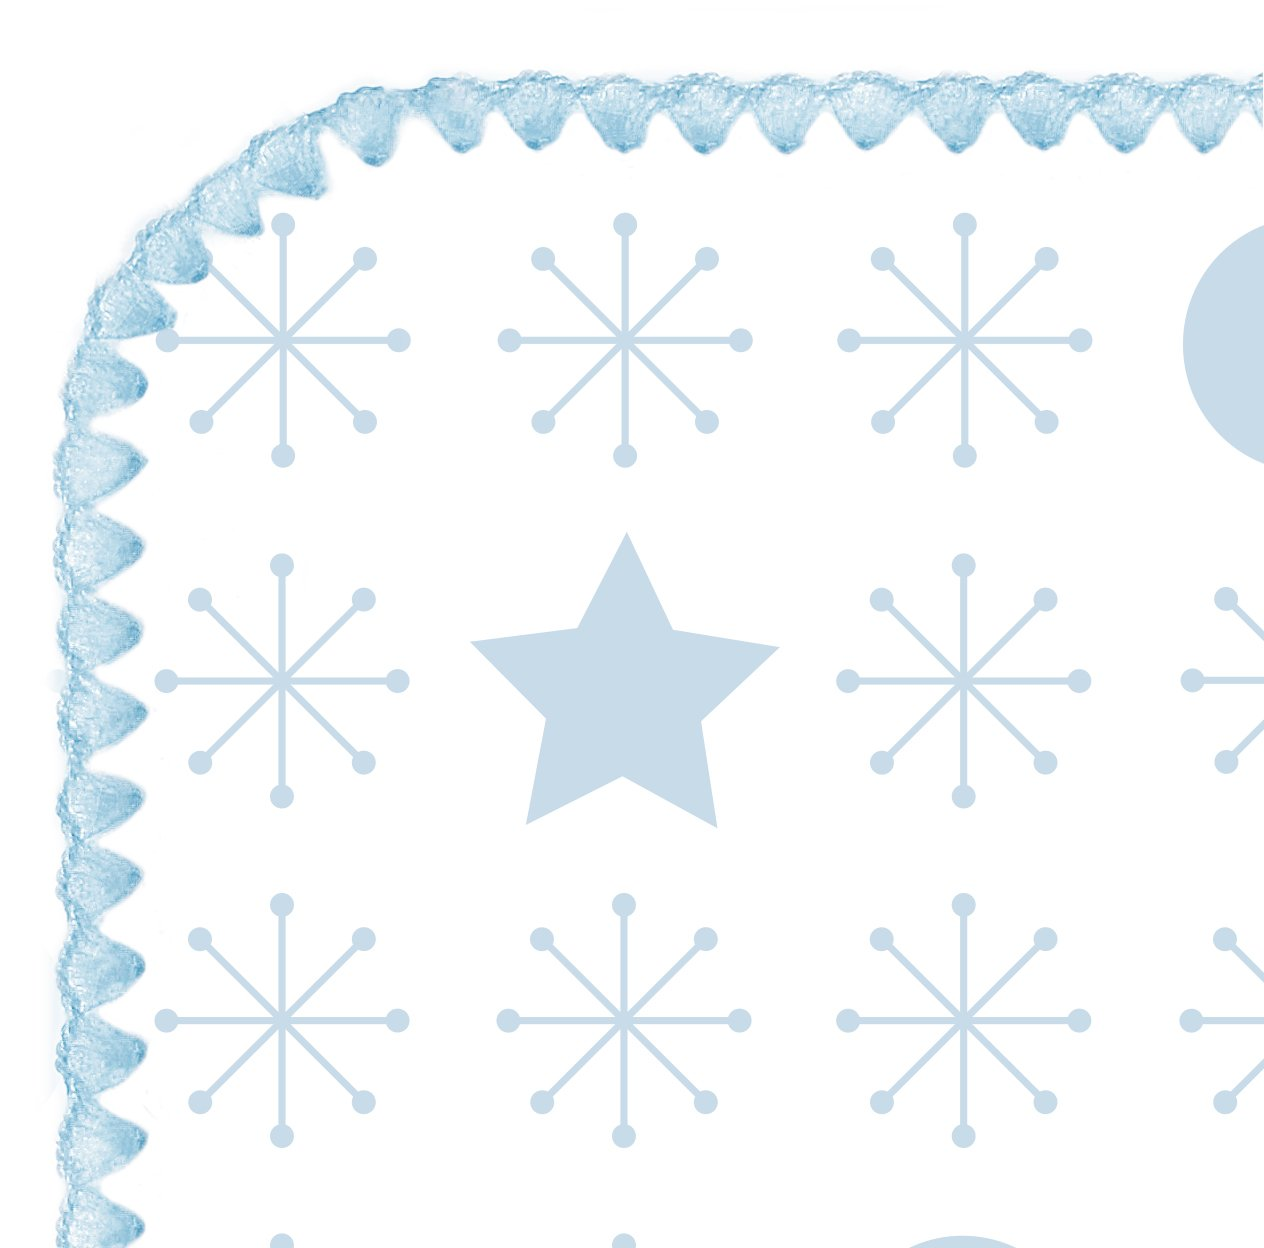 SwaddleDesigns Ultimate Winter Swaddle Premium Cotton Flannel X-Large Receiving Blanket Pastel Blue Dots Made in USA Moms Choice Award Winner